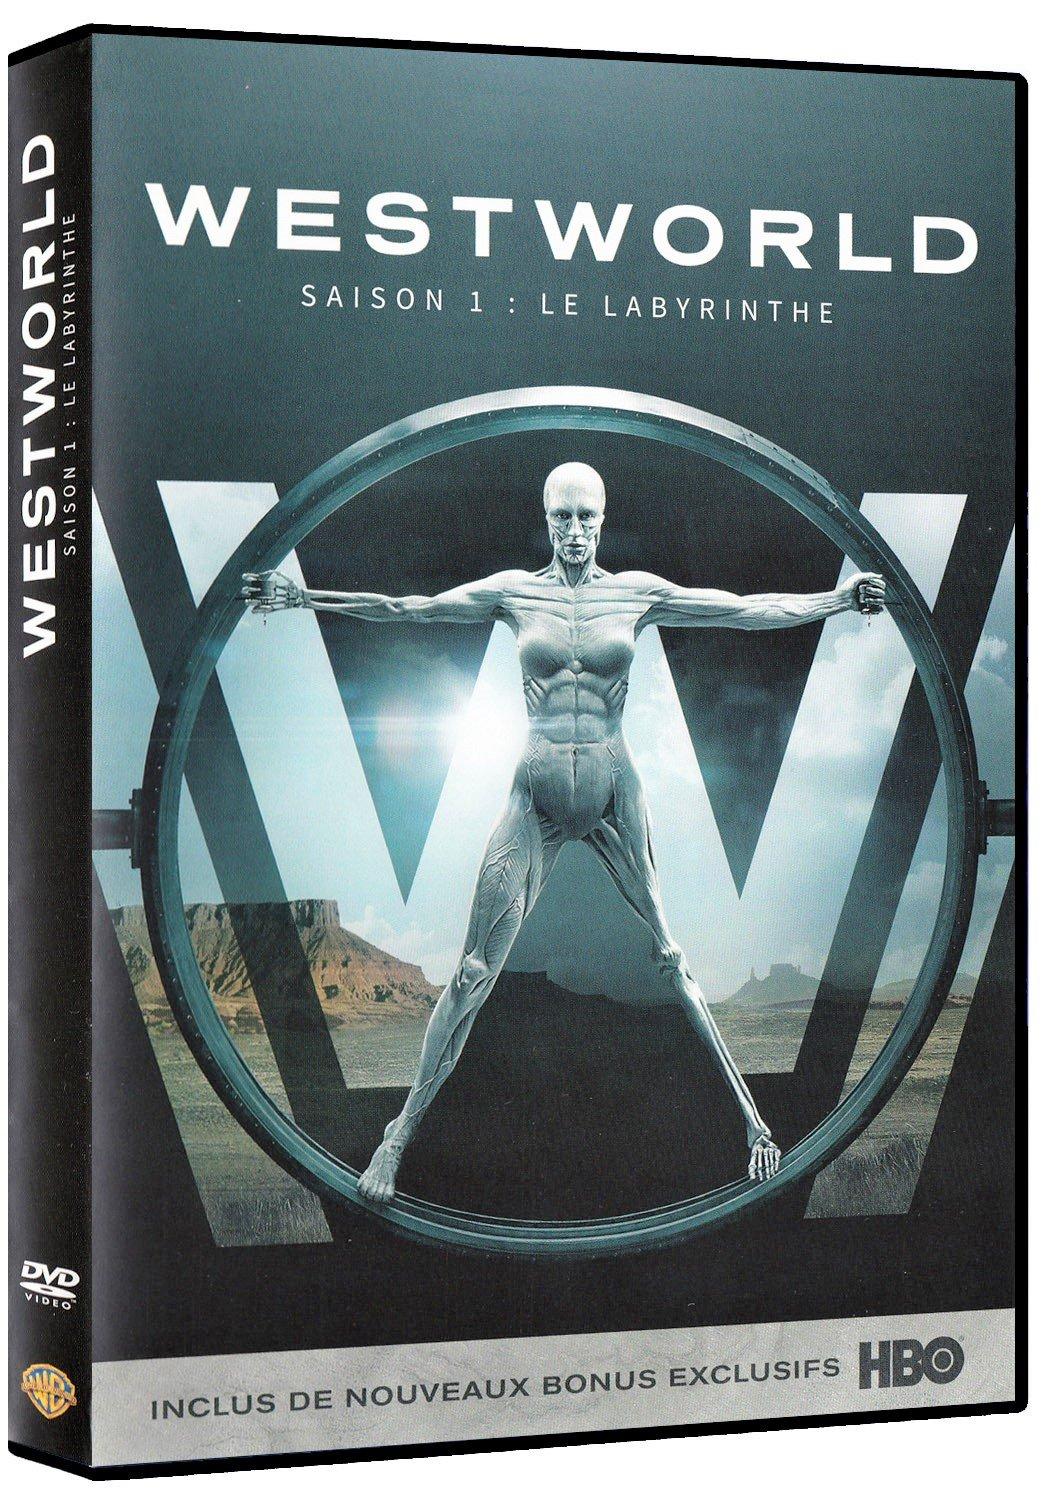 Westworld - Intégrale Saison 1 - DVD - HBO: Amazon.es: Cine y ...